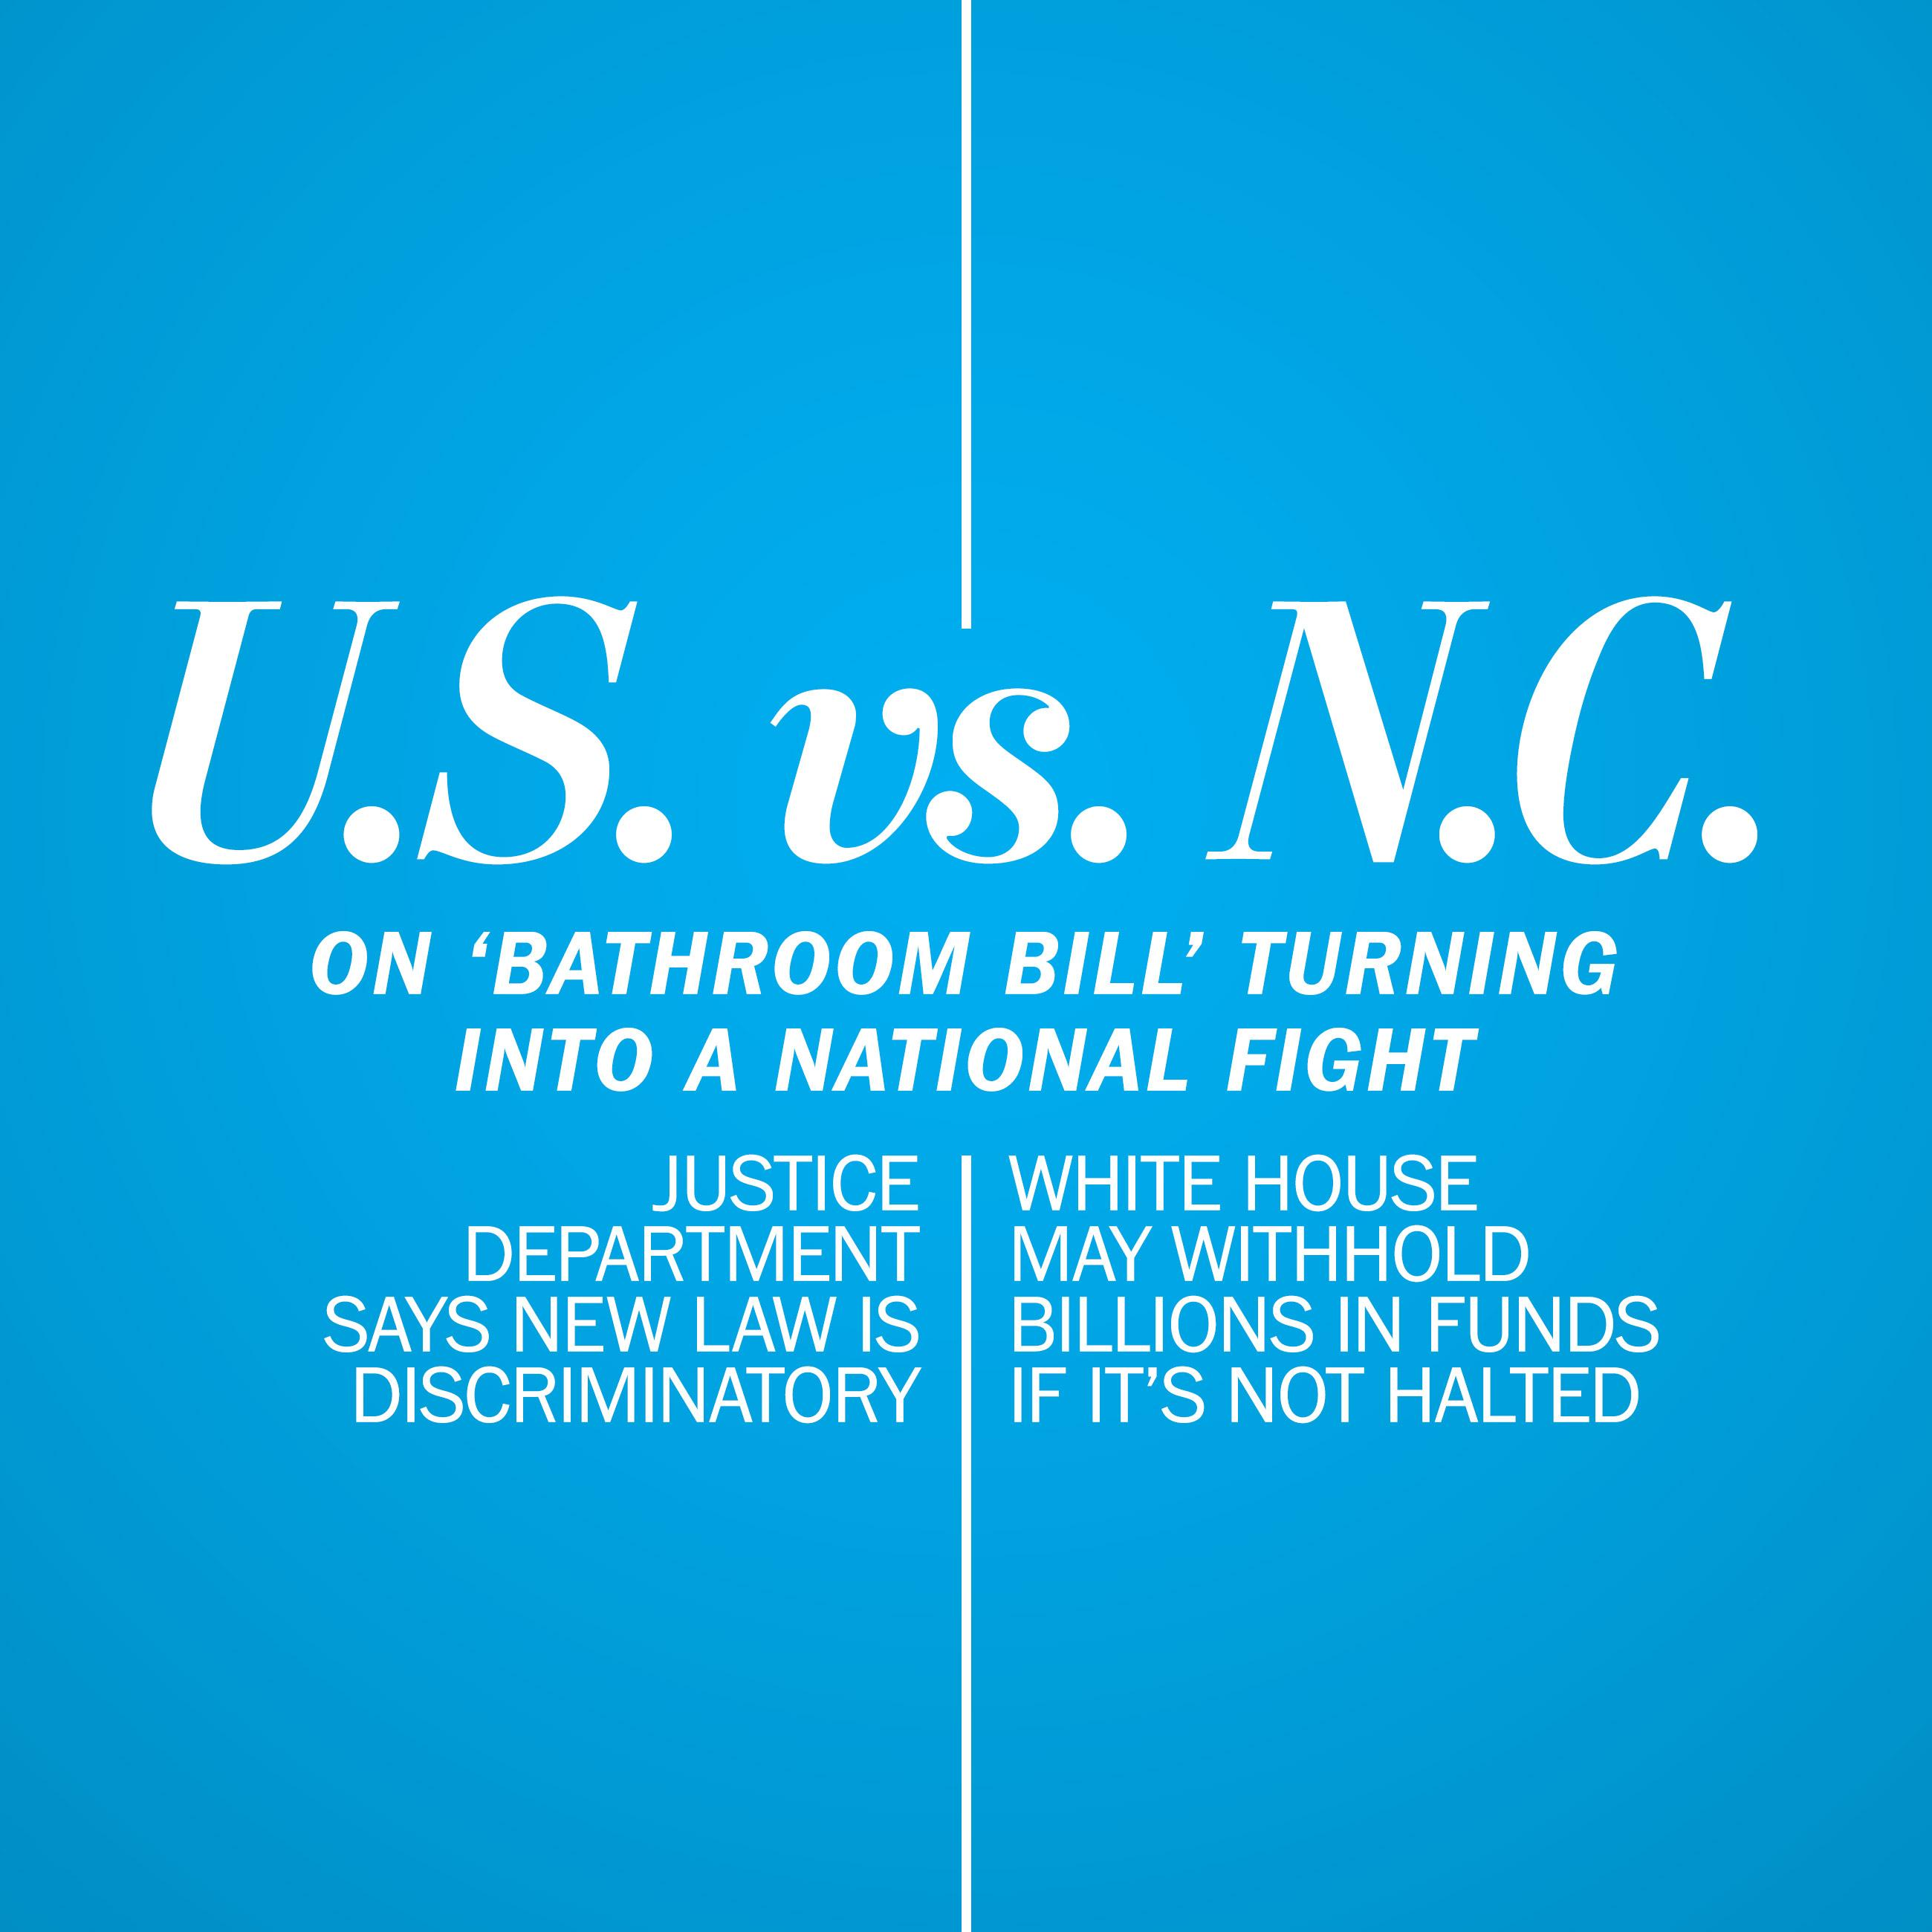 U.S. Justice Dept. clash with N.C. on 'bathroom bill' is becoming a national fight